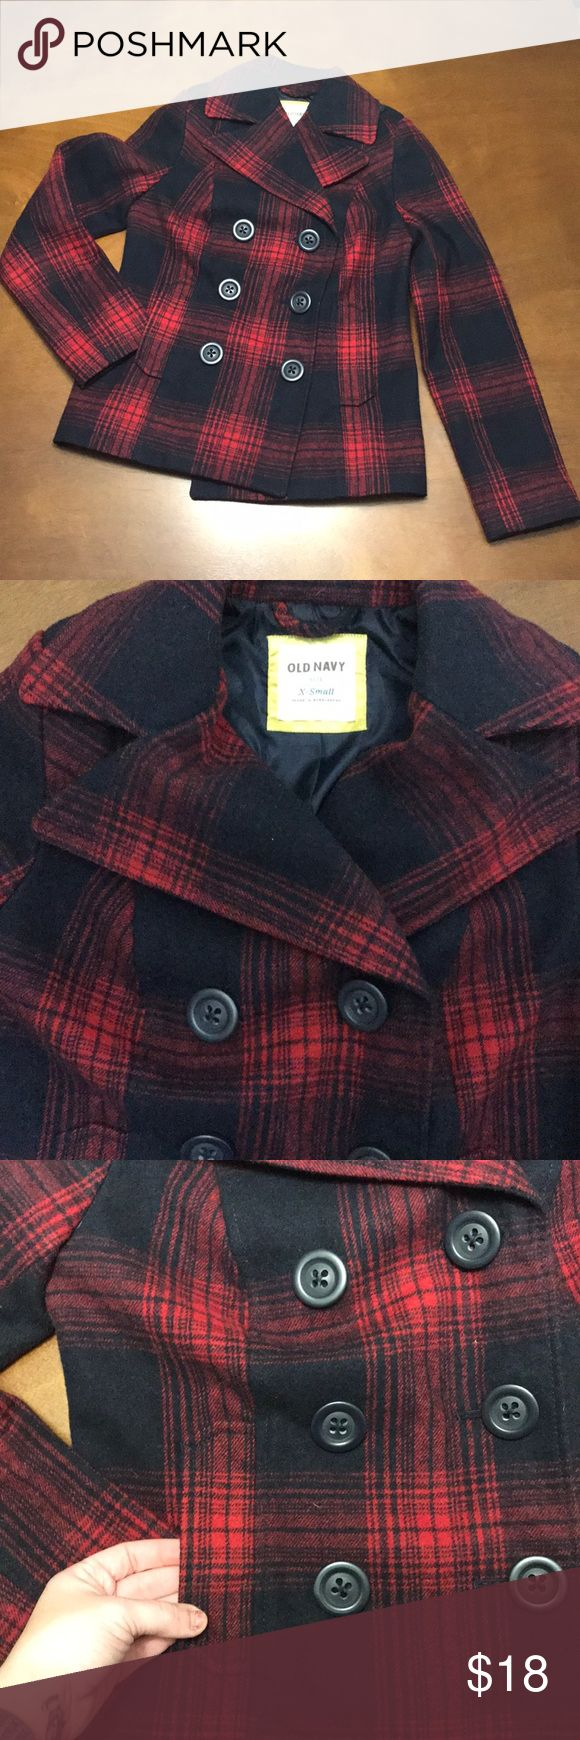 Old Navy Pea Coat Red and dark navy/blackish plaid pea coat! Six button breast and one inside button. Two front pockets! Perfect condition! Old Navy Jackets & Coats Pea Coats